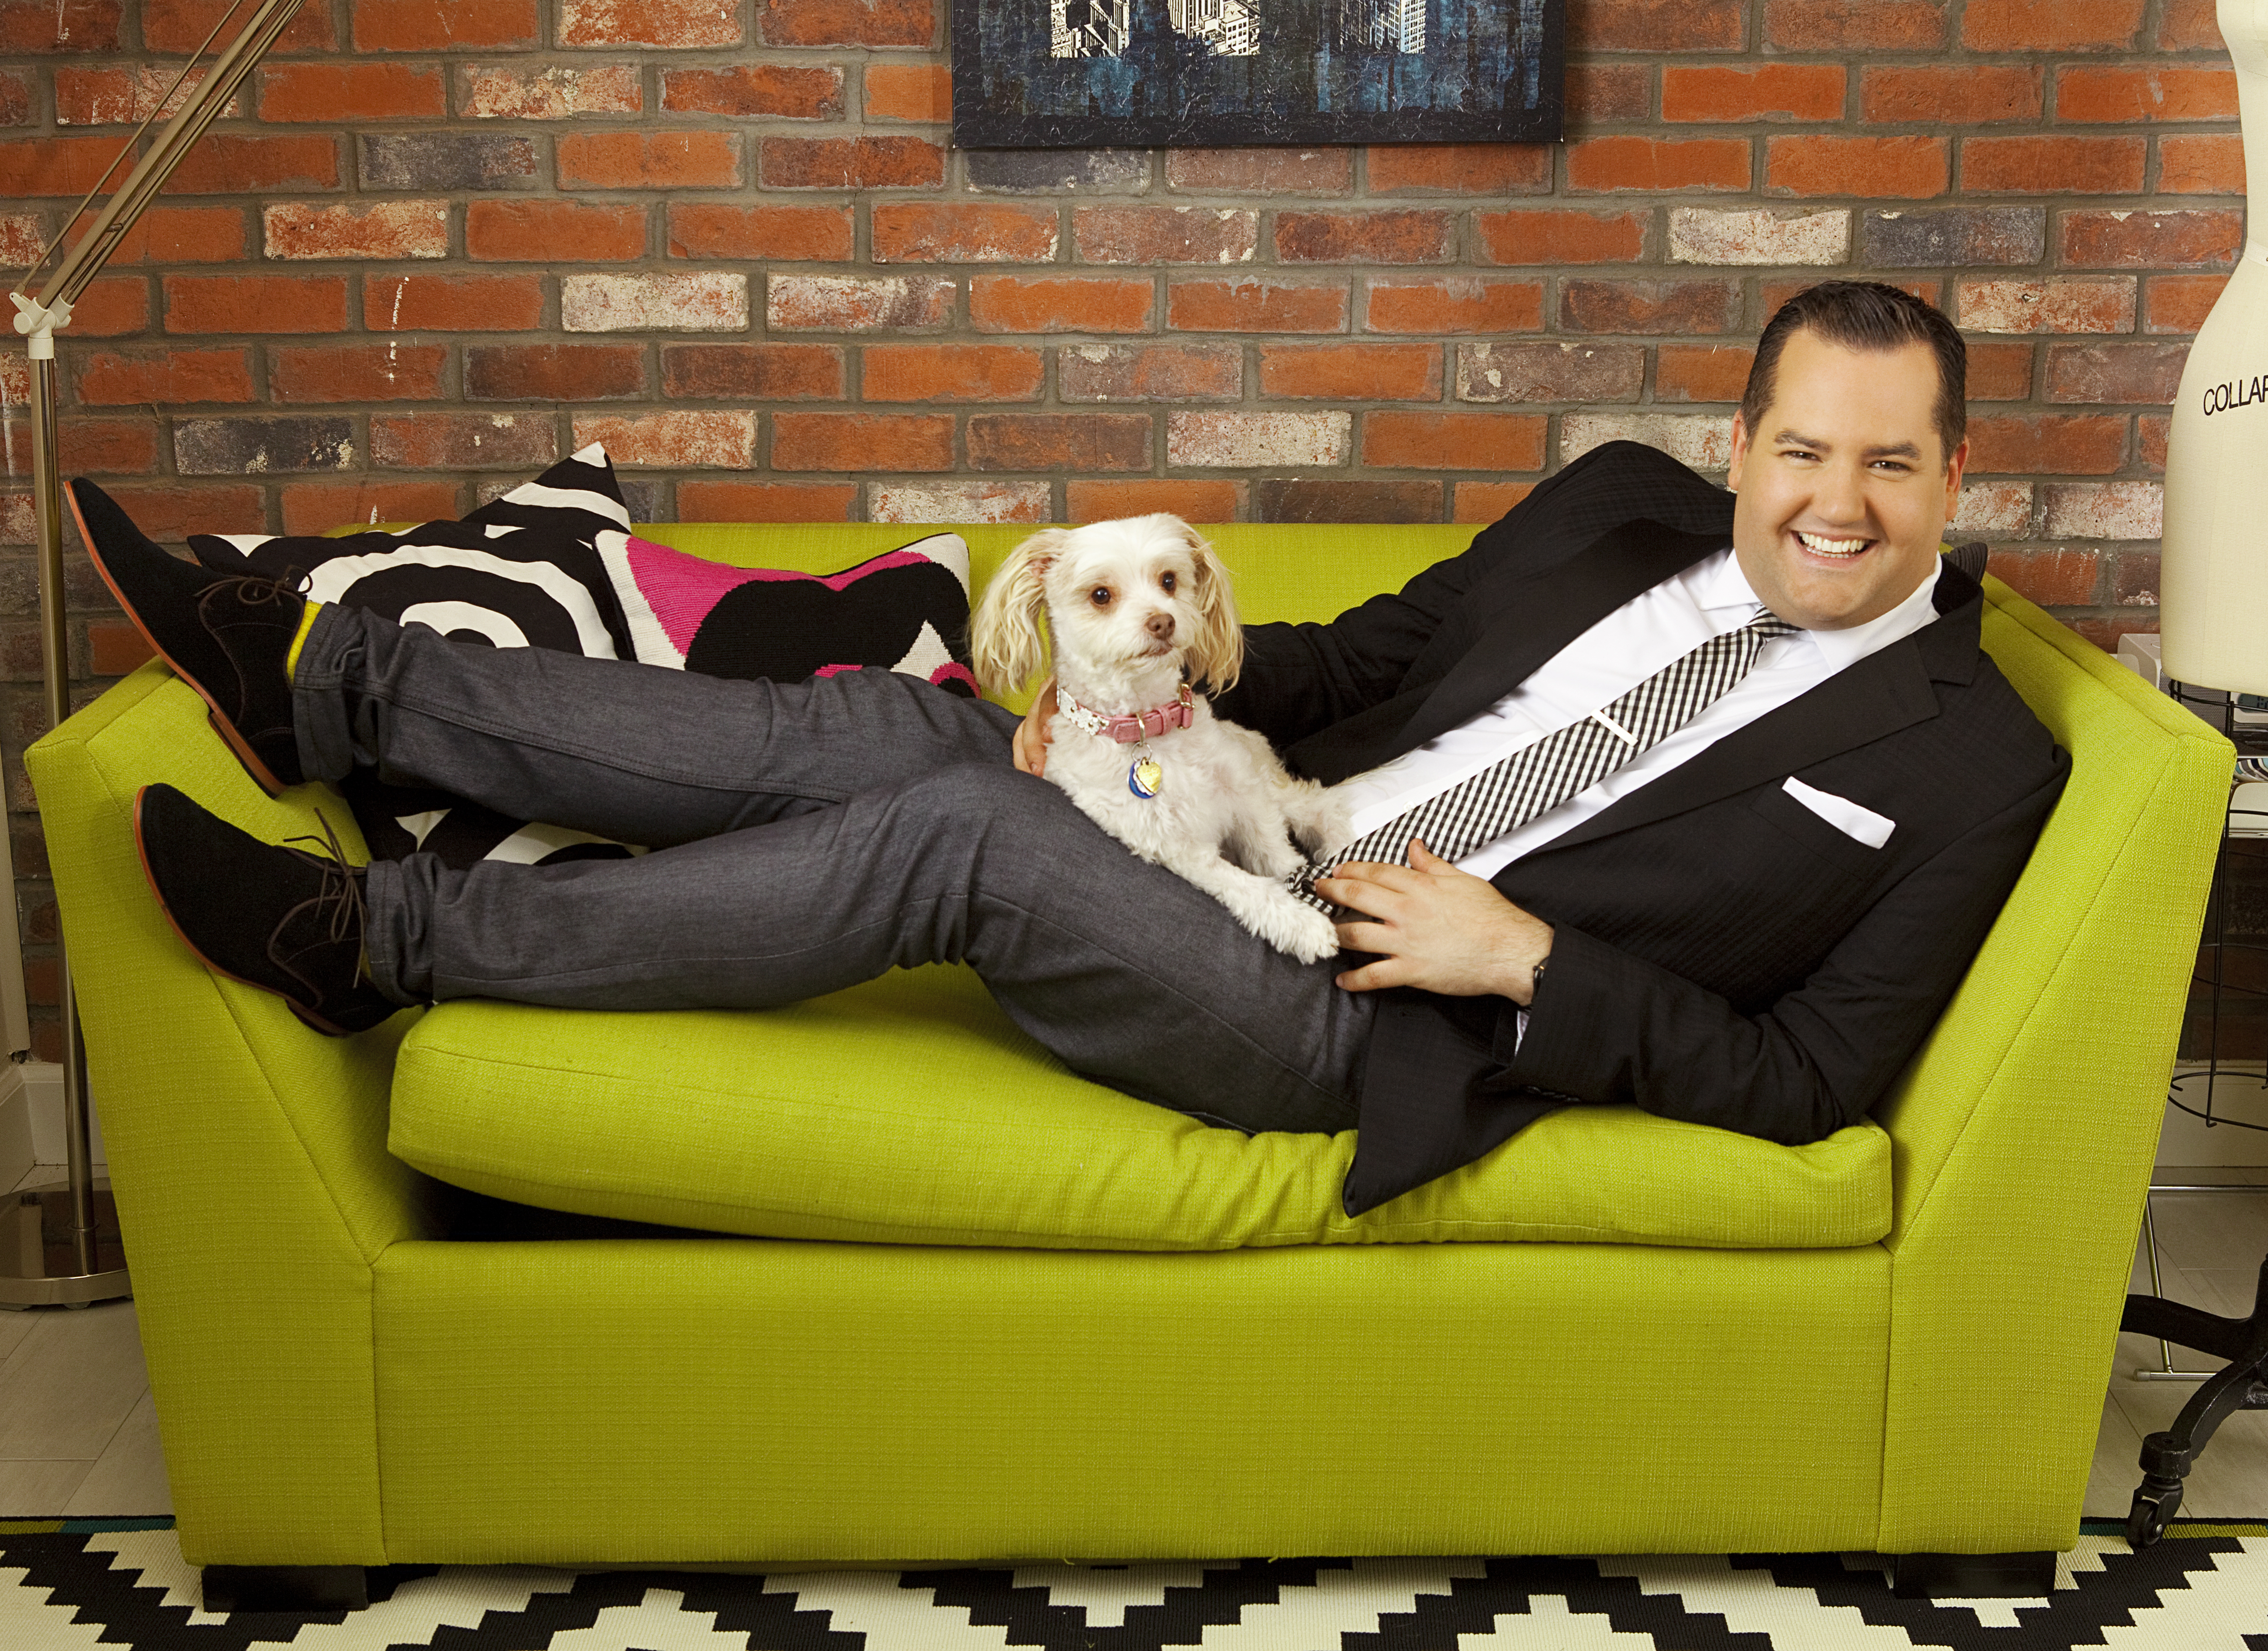 Ross Mathews Says His First HIV Test Was Scary, But Yours Doesn't Have To Be